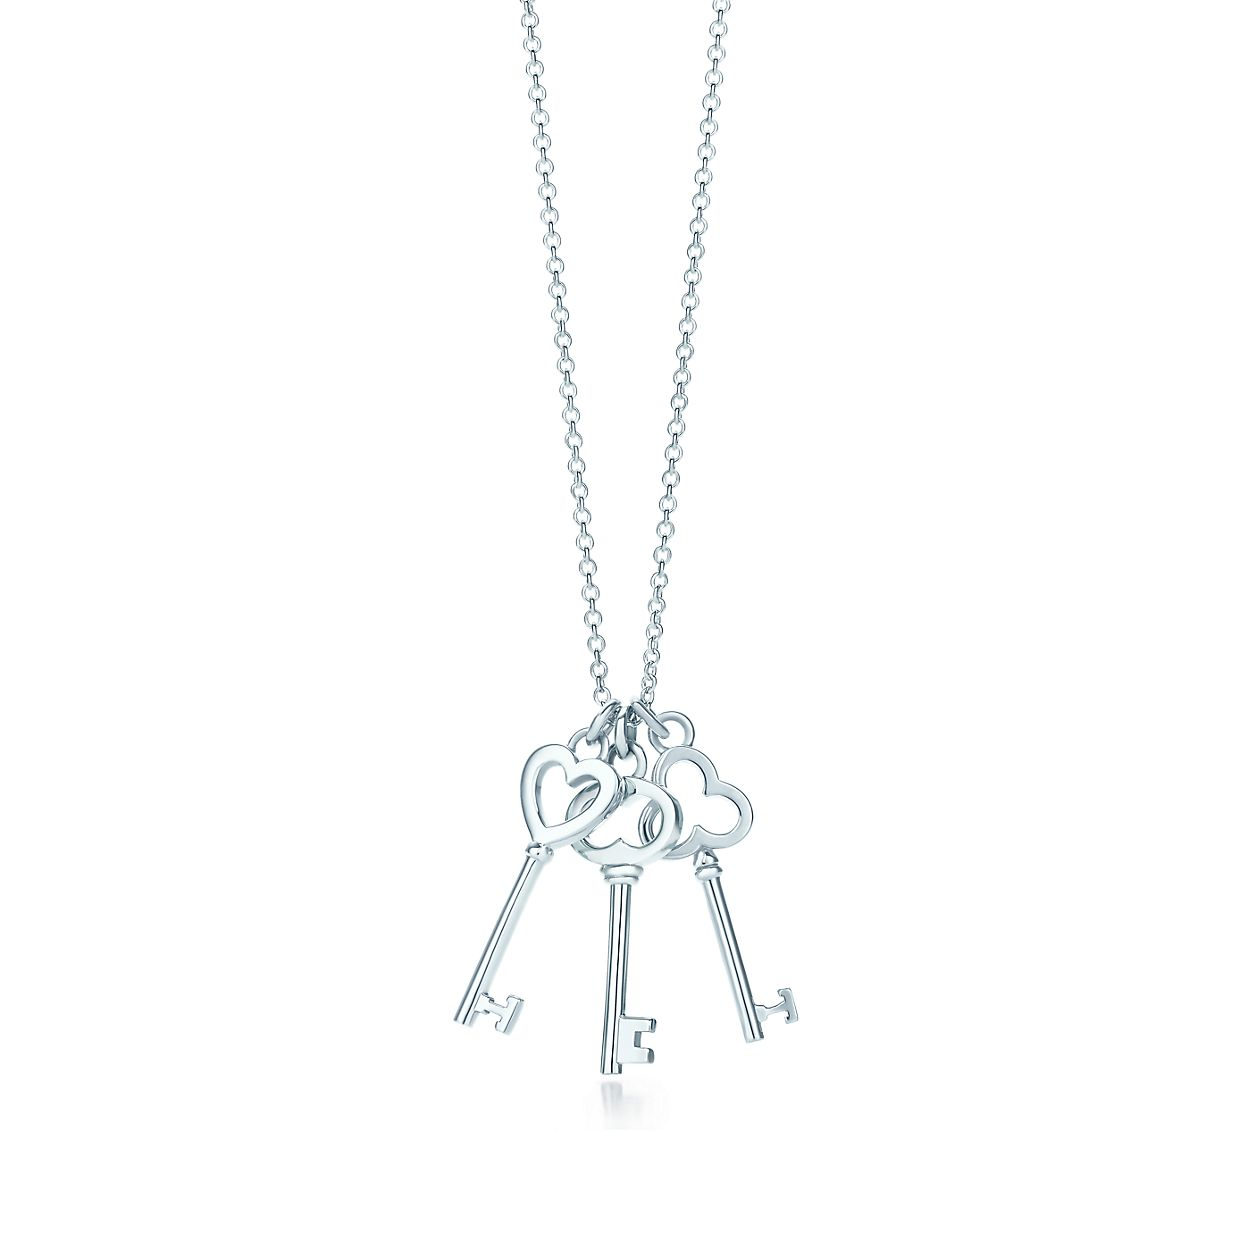 Tiffany keys mini three key pendant in sterling silver tiffany co tiffany keysthree key pendant mozeypictures Image collections